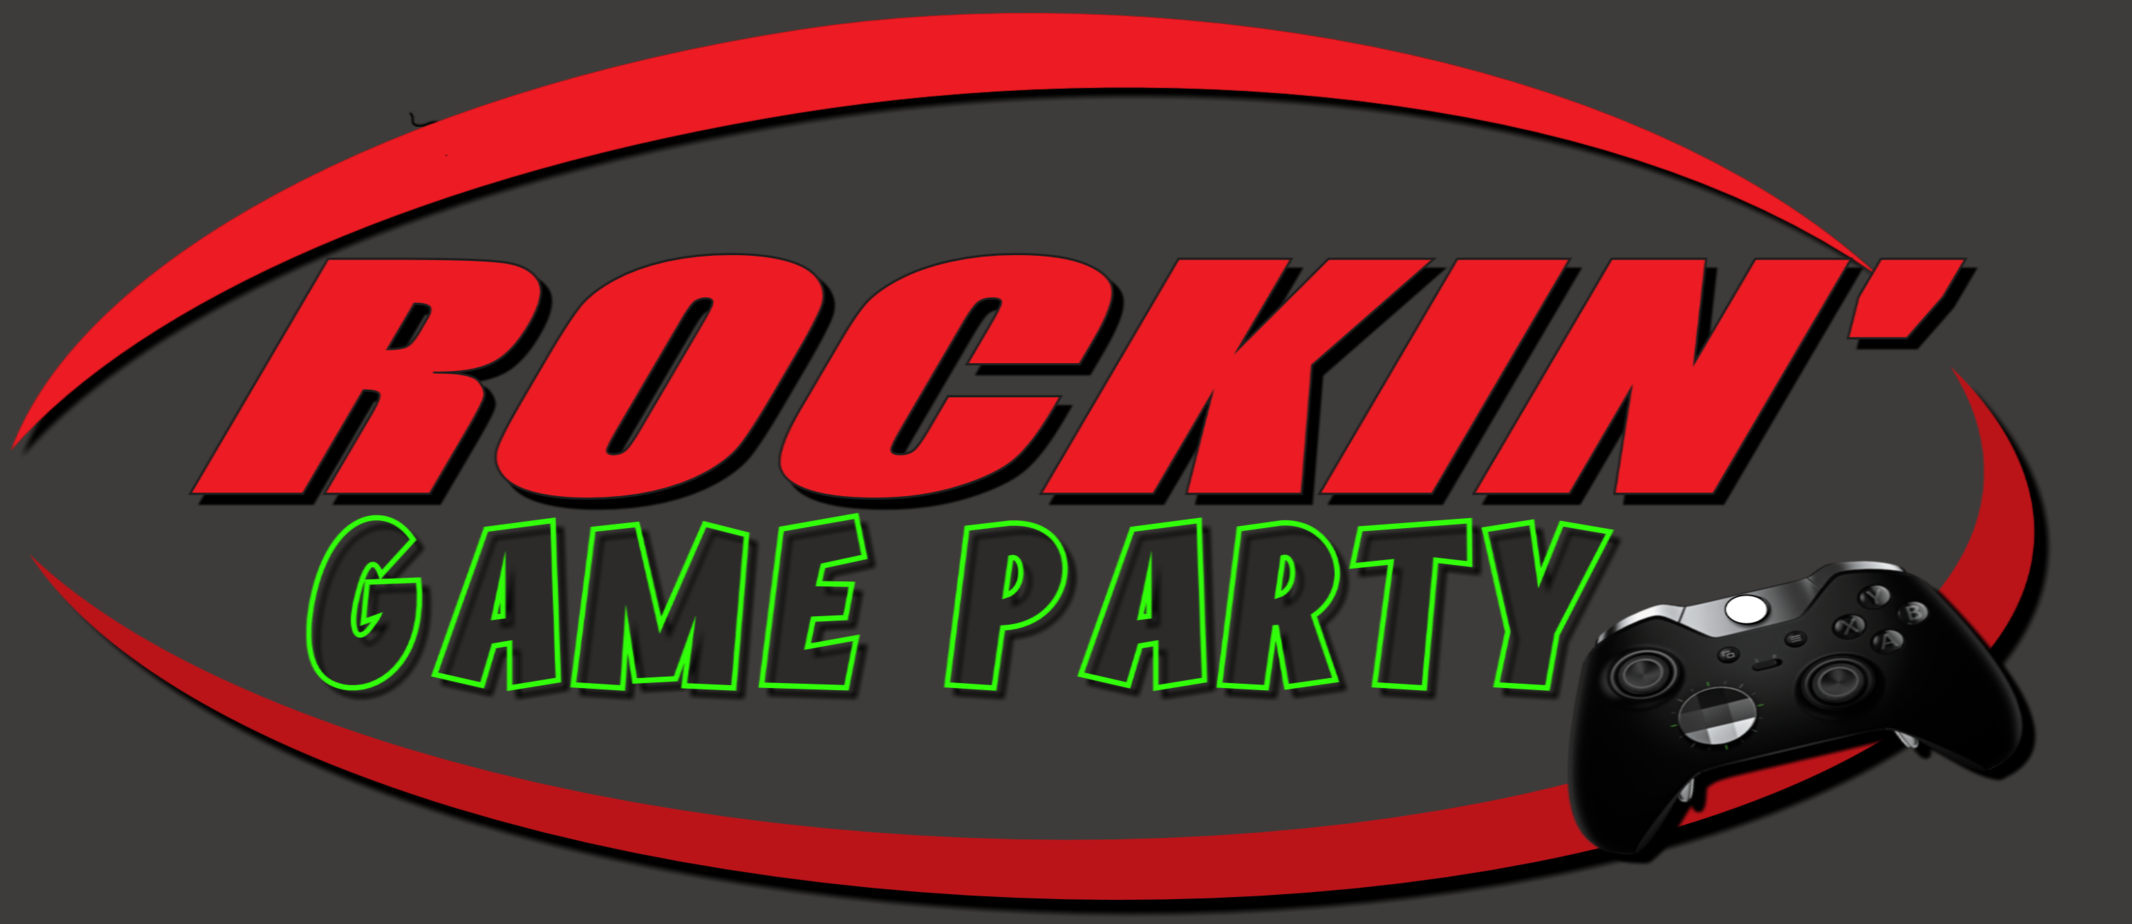 https://drsdesignco.com/wp-content/uploads/2016/06/ROCKIN-GAME-PARTY-LOGO.png